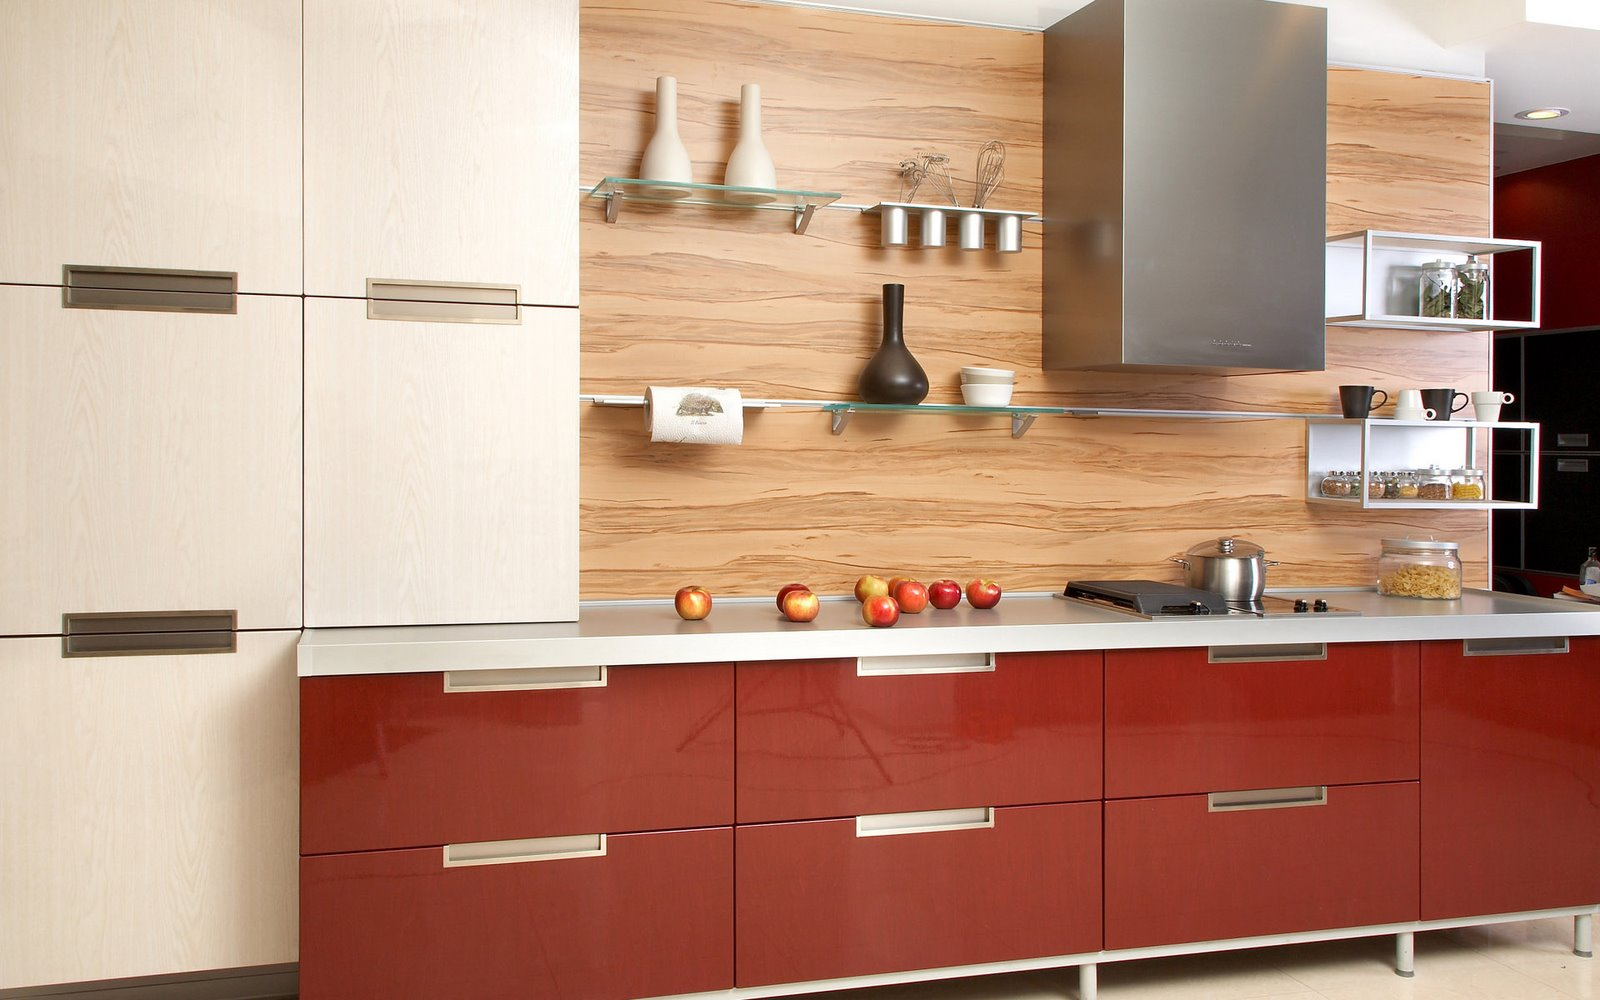 Modern wood kitchen design dream kitchens pinterest kitchen designs kitchens and open Modern design kitchen designs